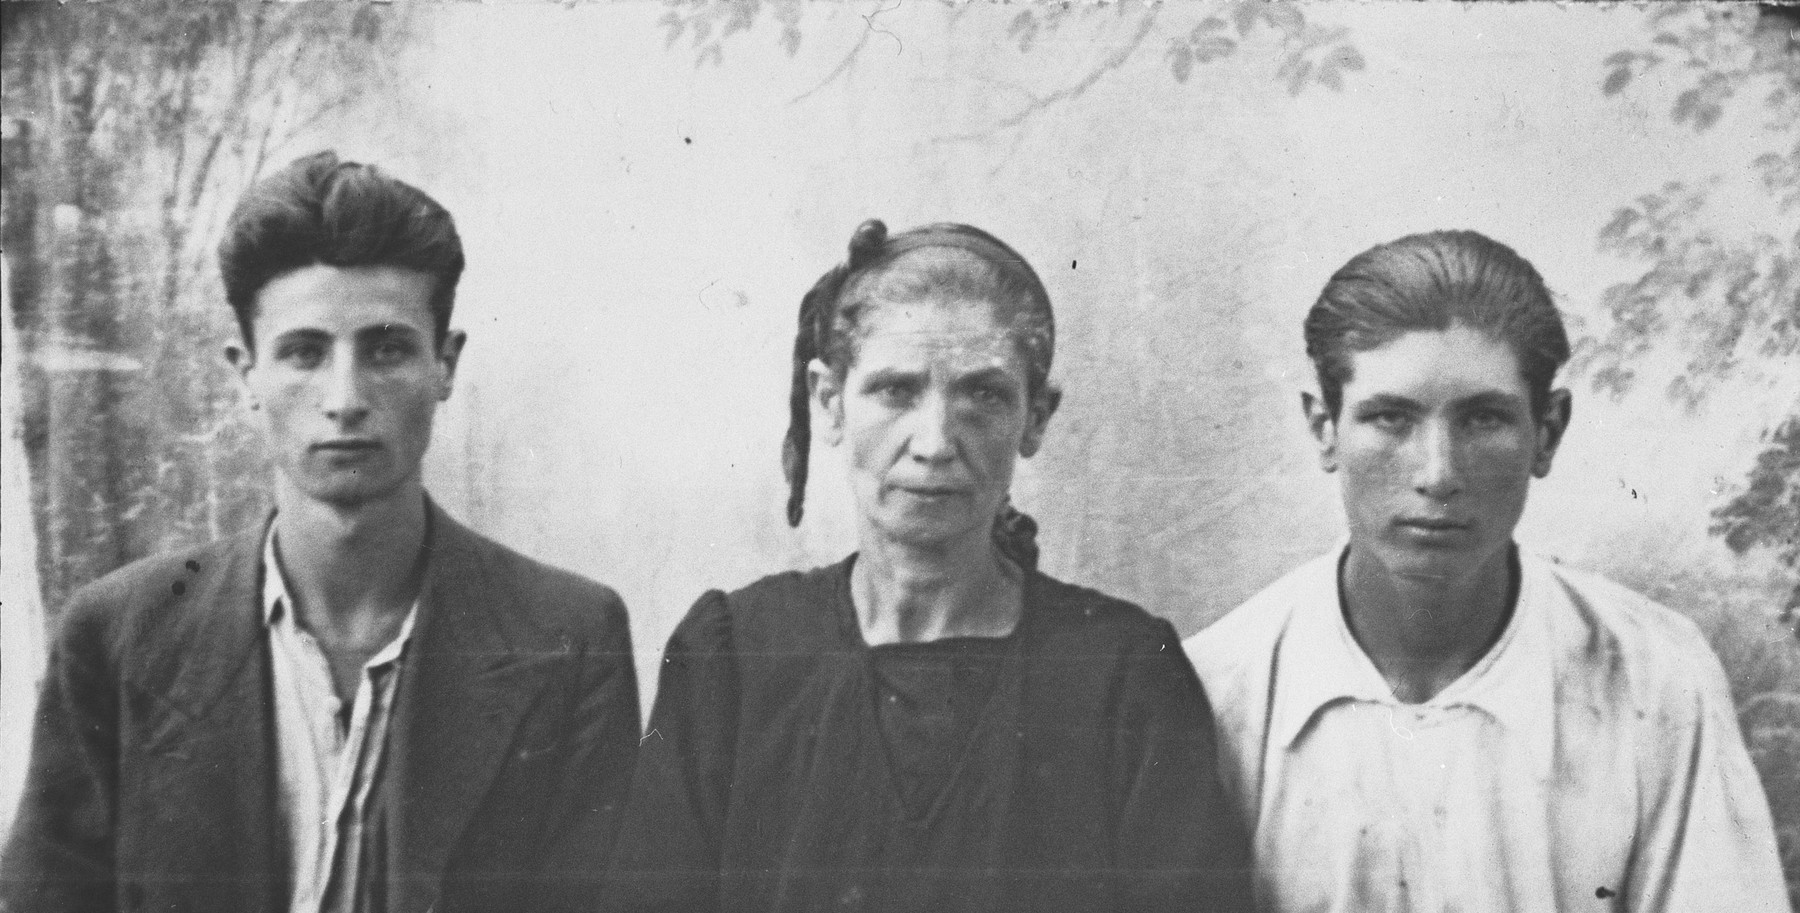 Portrait of Buena, Simon, and Avram Geron.  Simon and Avram were students.  They lived at Skopyanska 68 in Bitola. (patronymic-all: Haim)